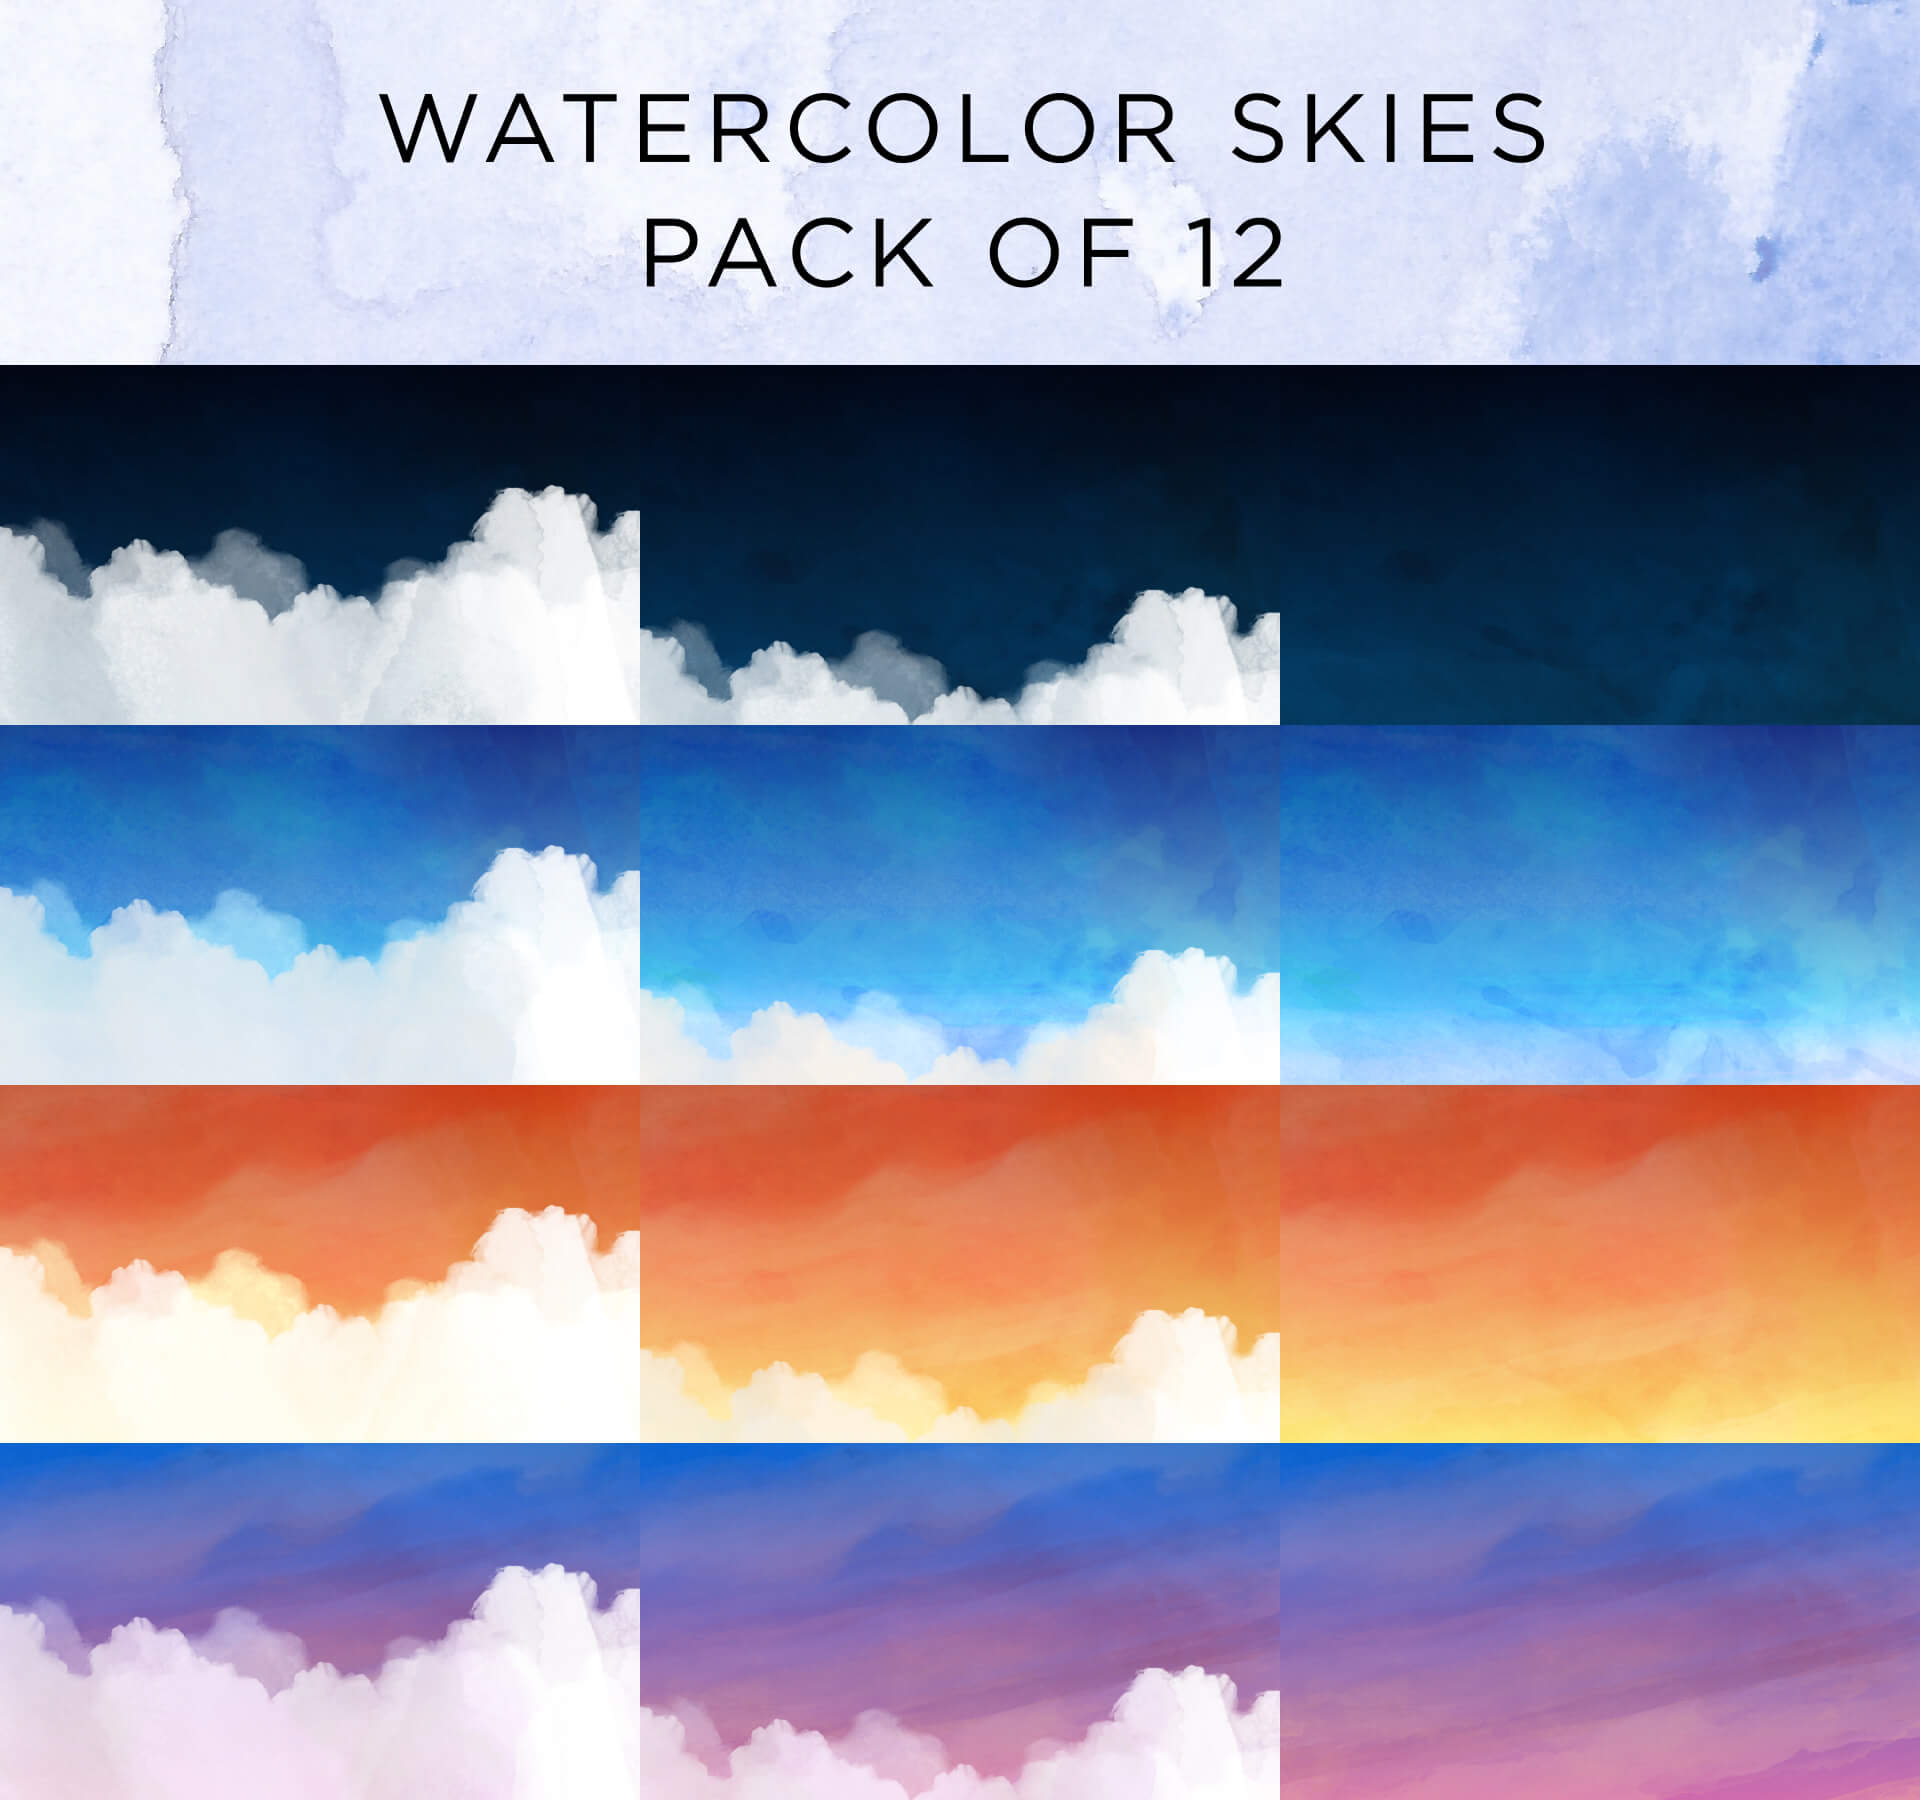 Watercolor Skies Animated Background Pack 1